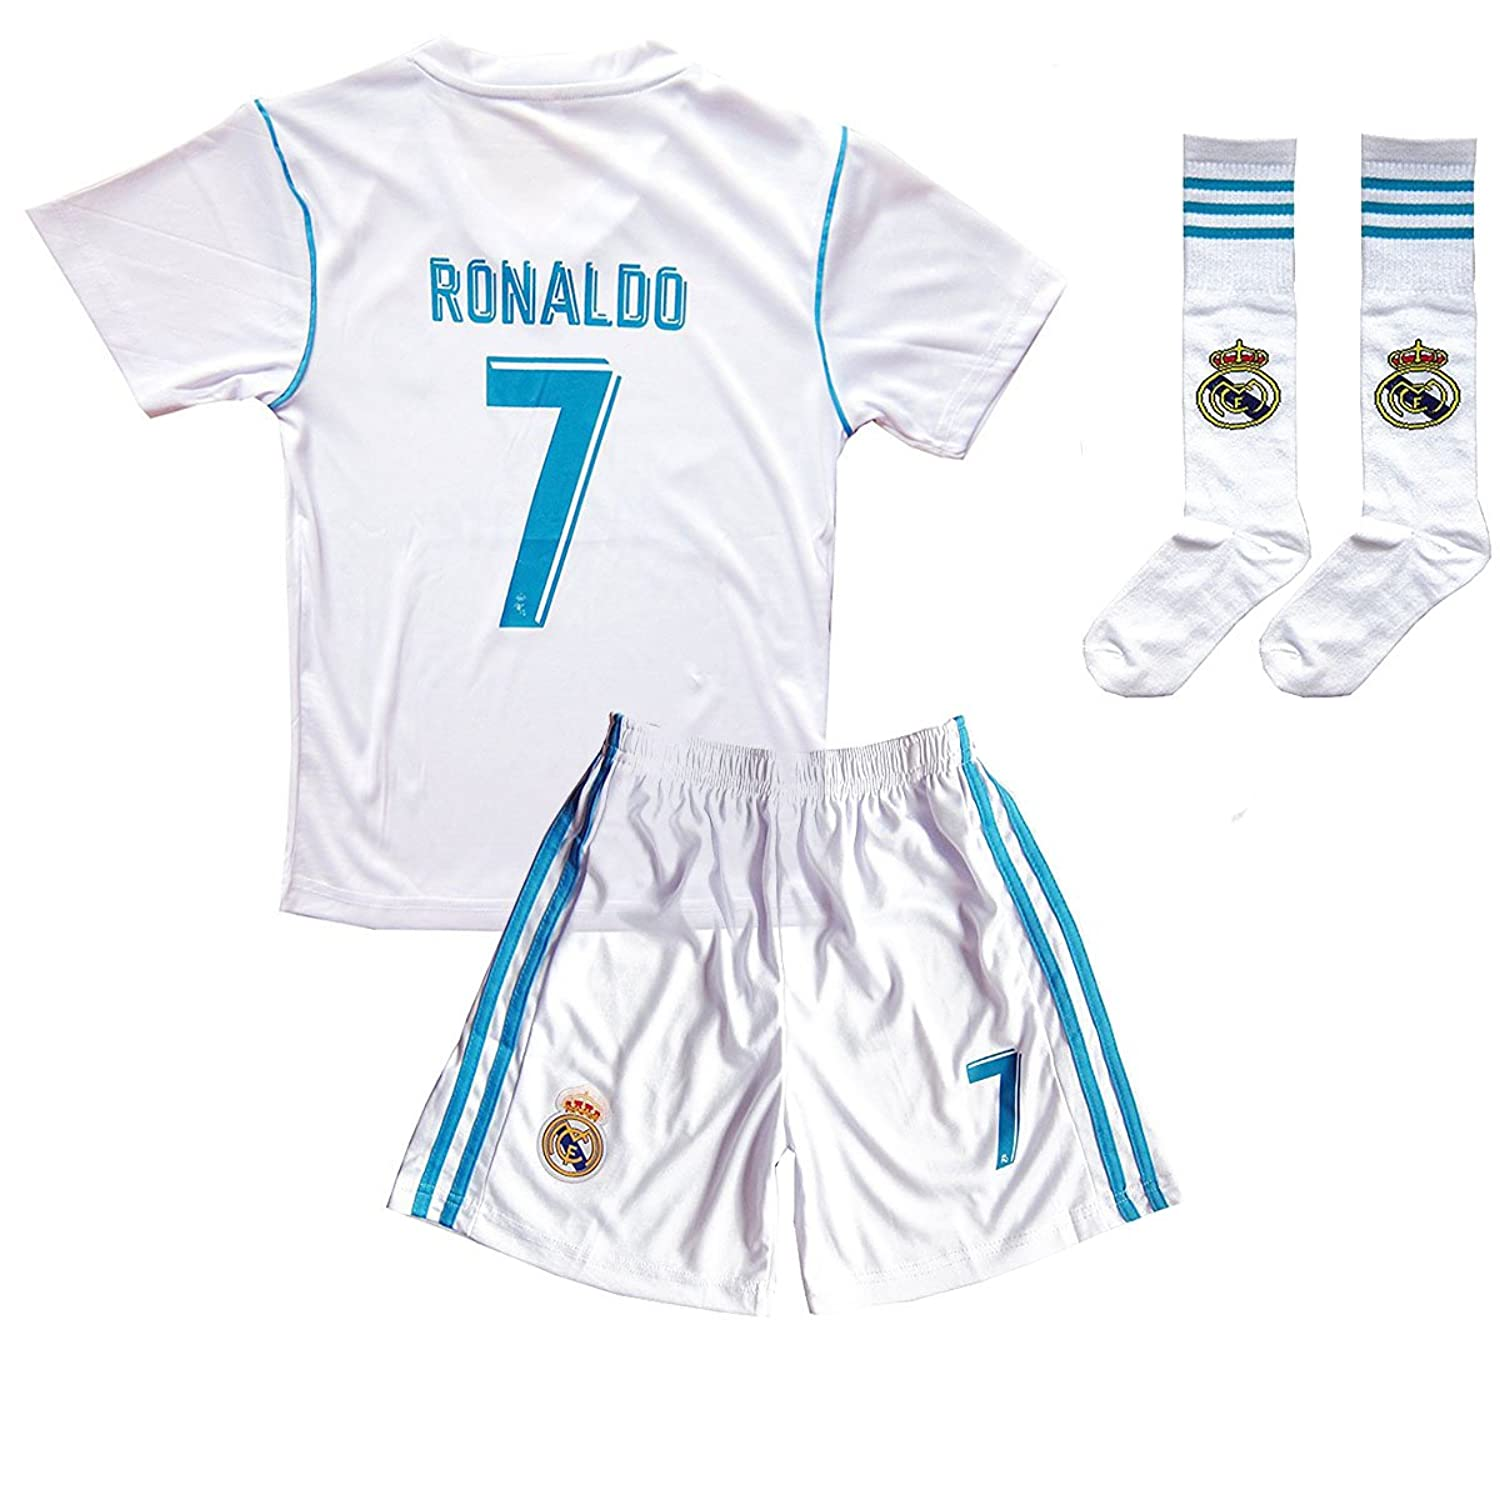 meet fd63c e2bf2 Xpbowy Youth Real Madrid #7 Ronaldo Jerseys Kids Home Soccer ...